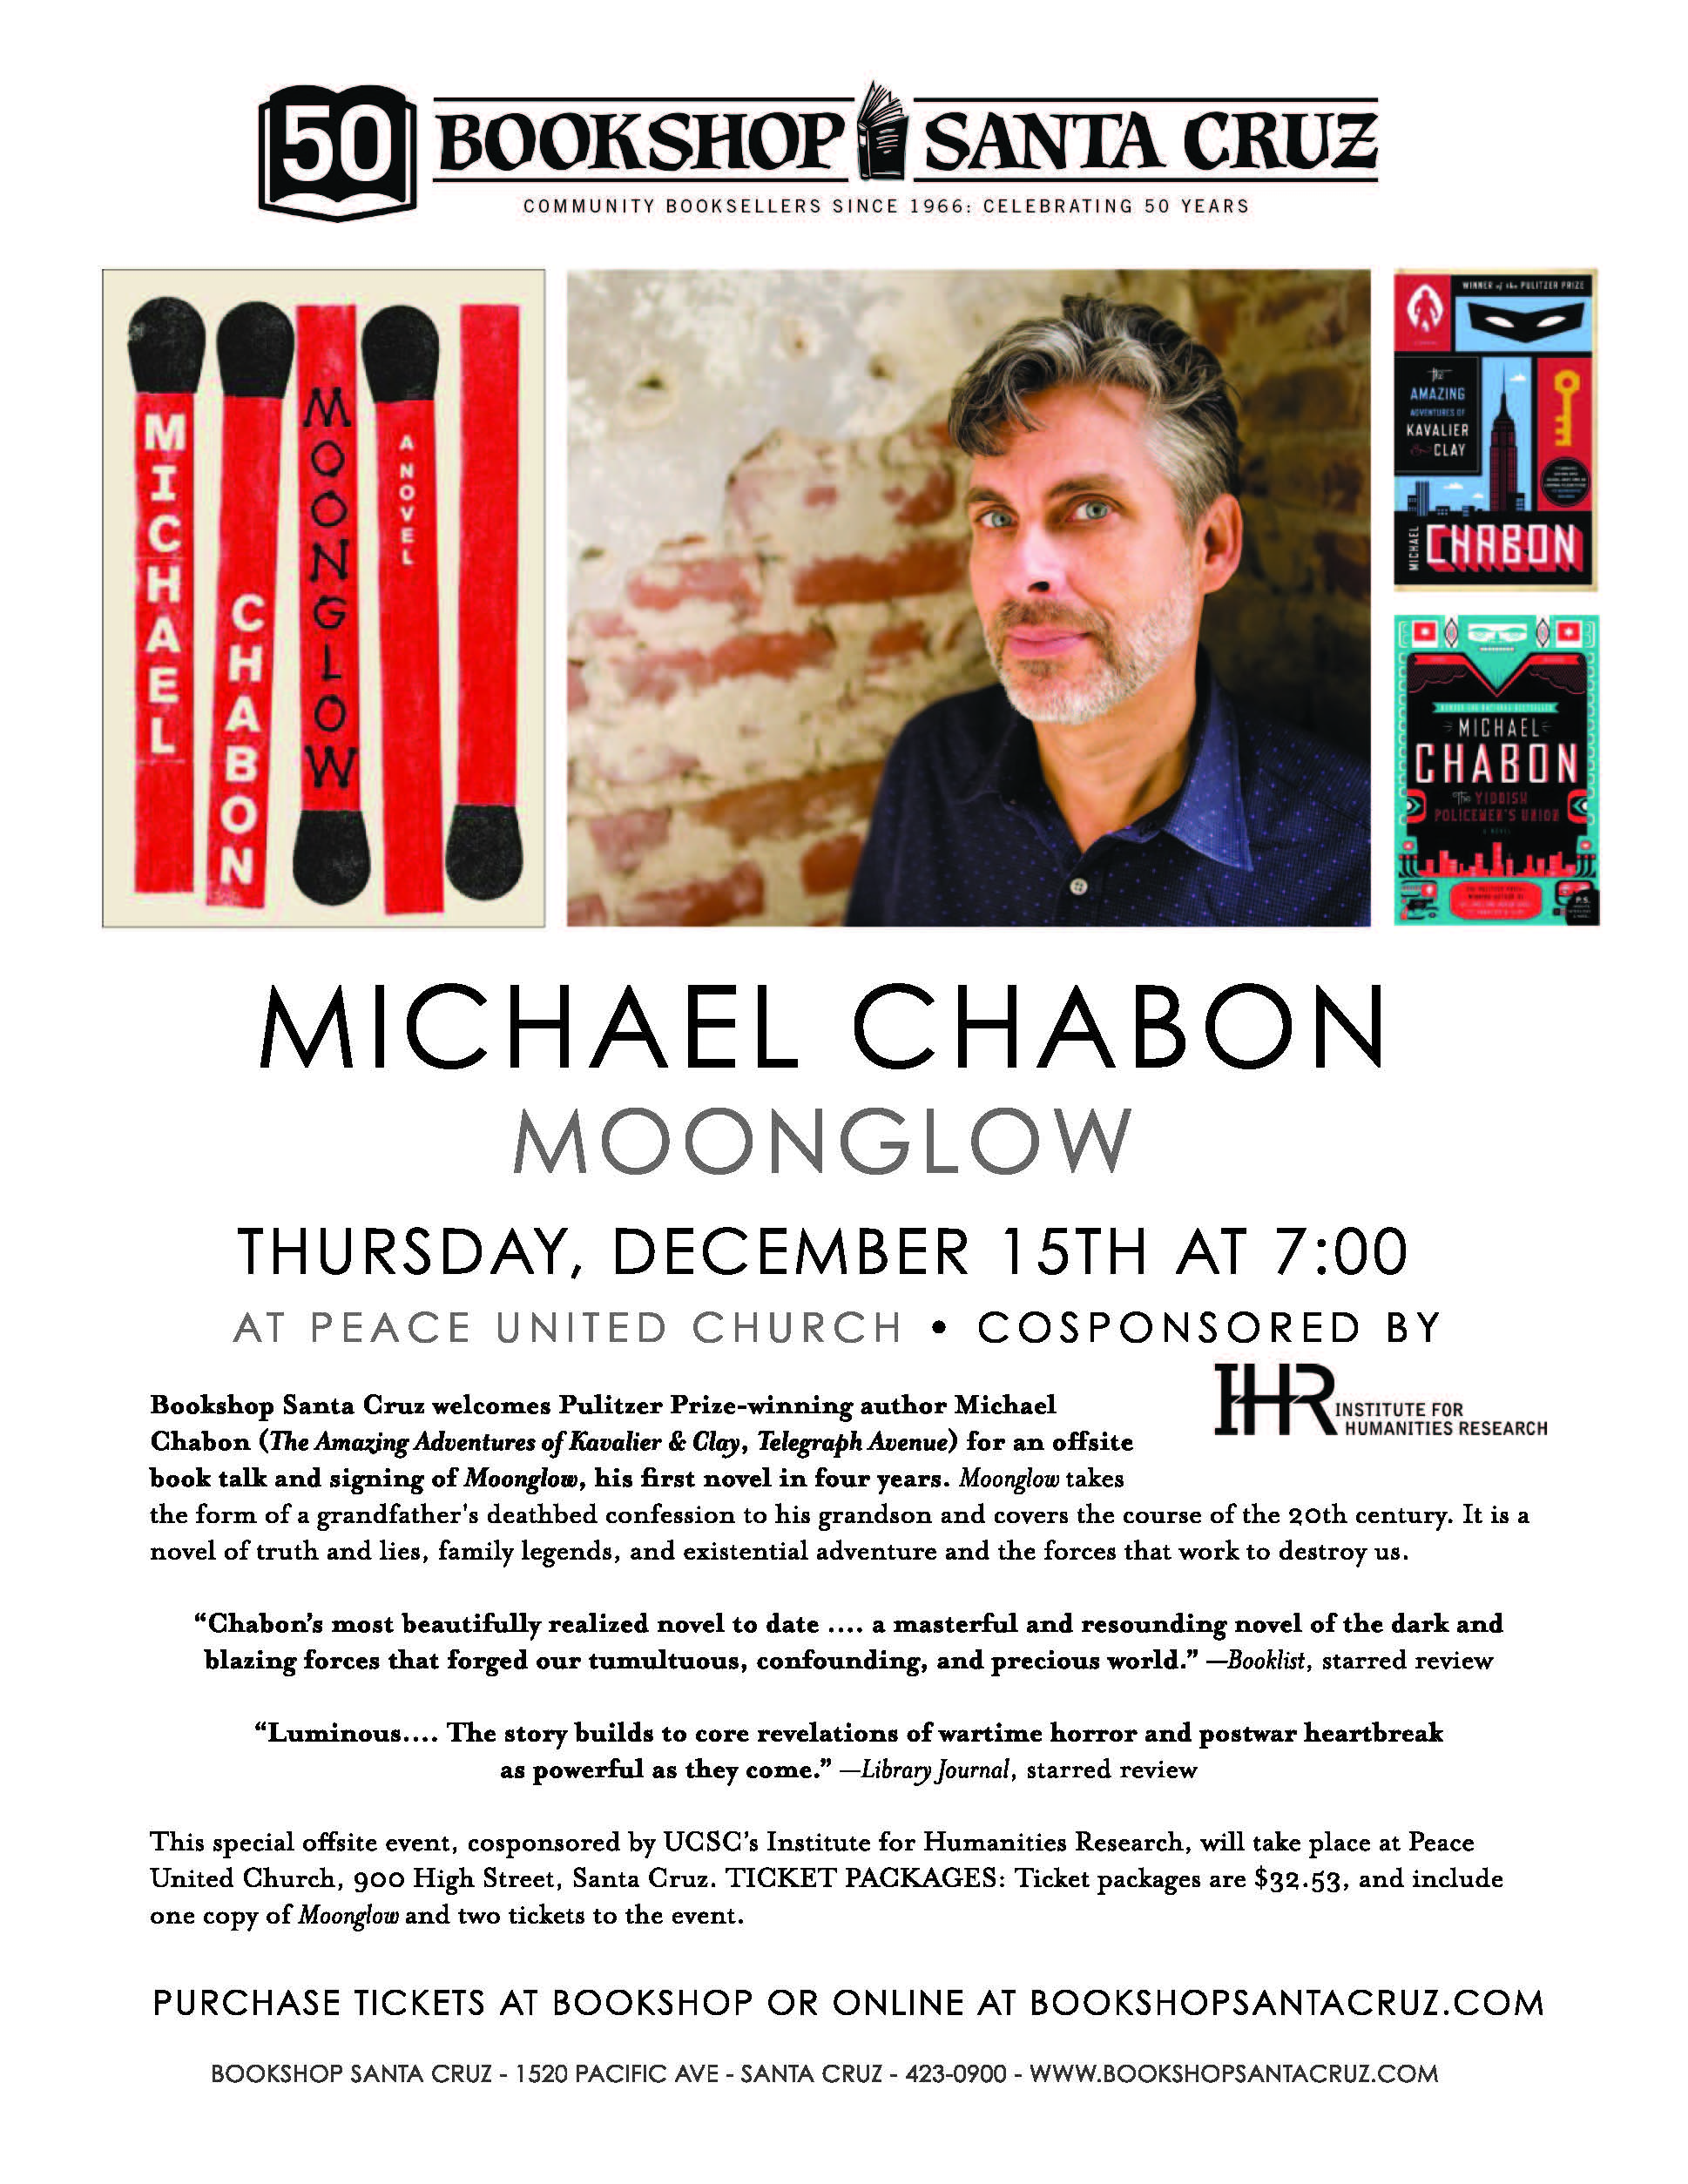 michael chabon event flyer